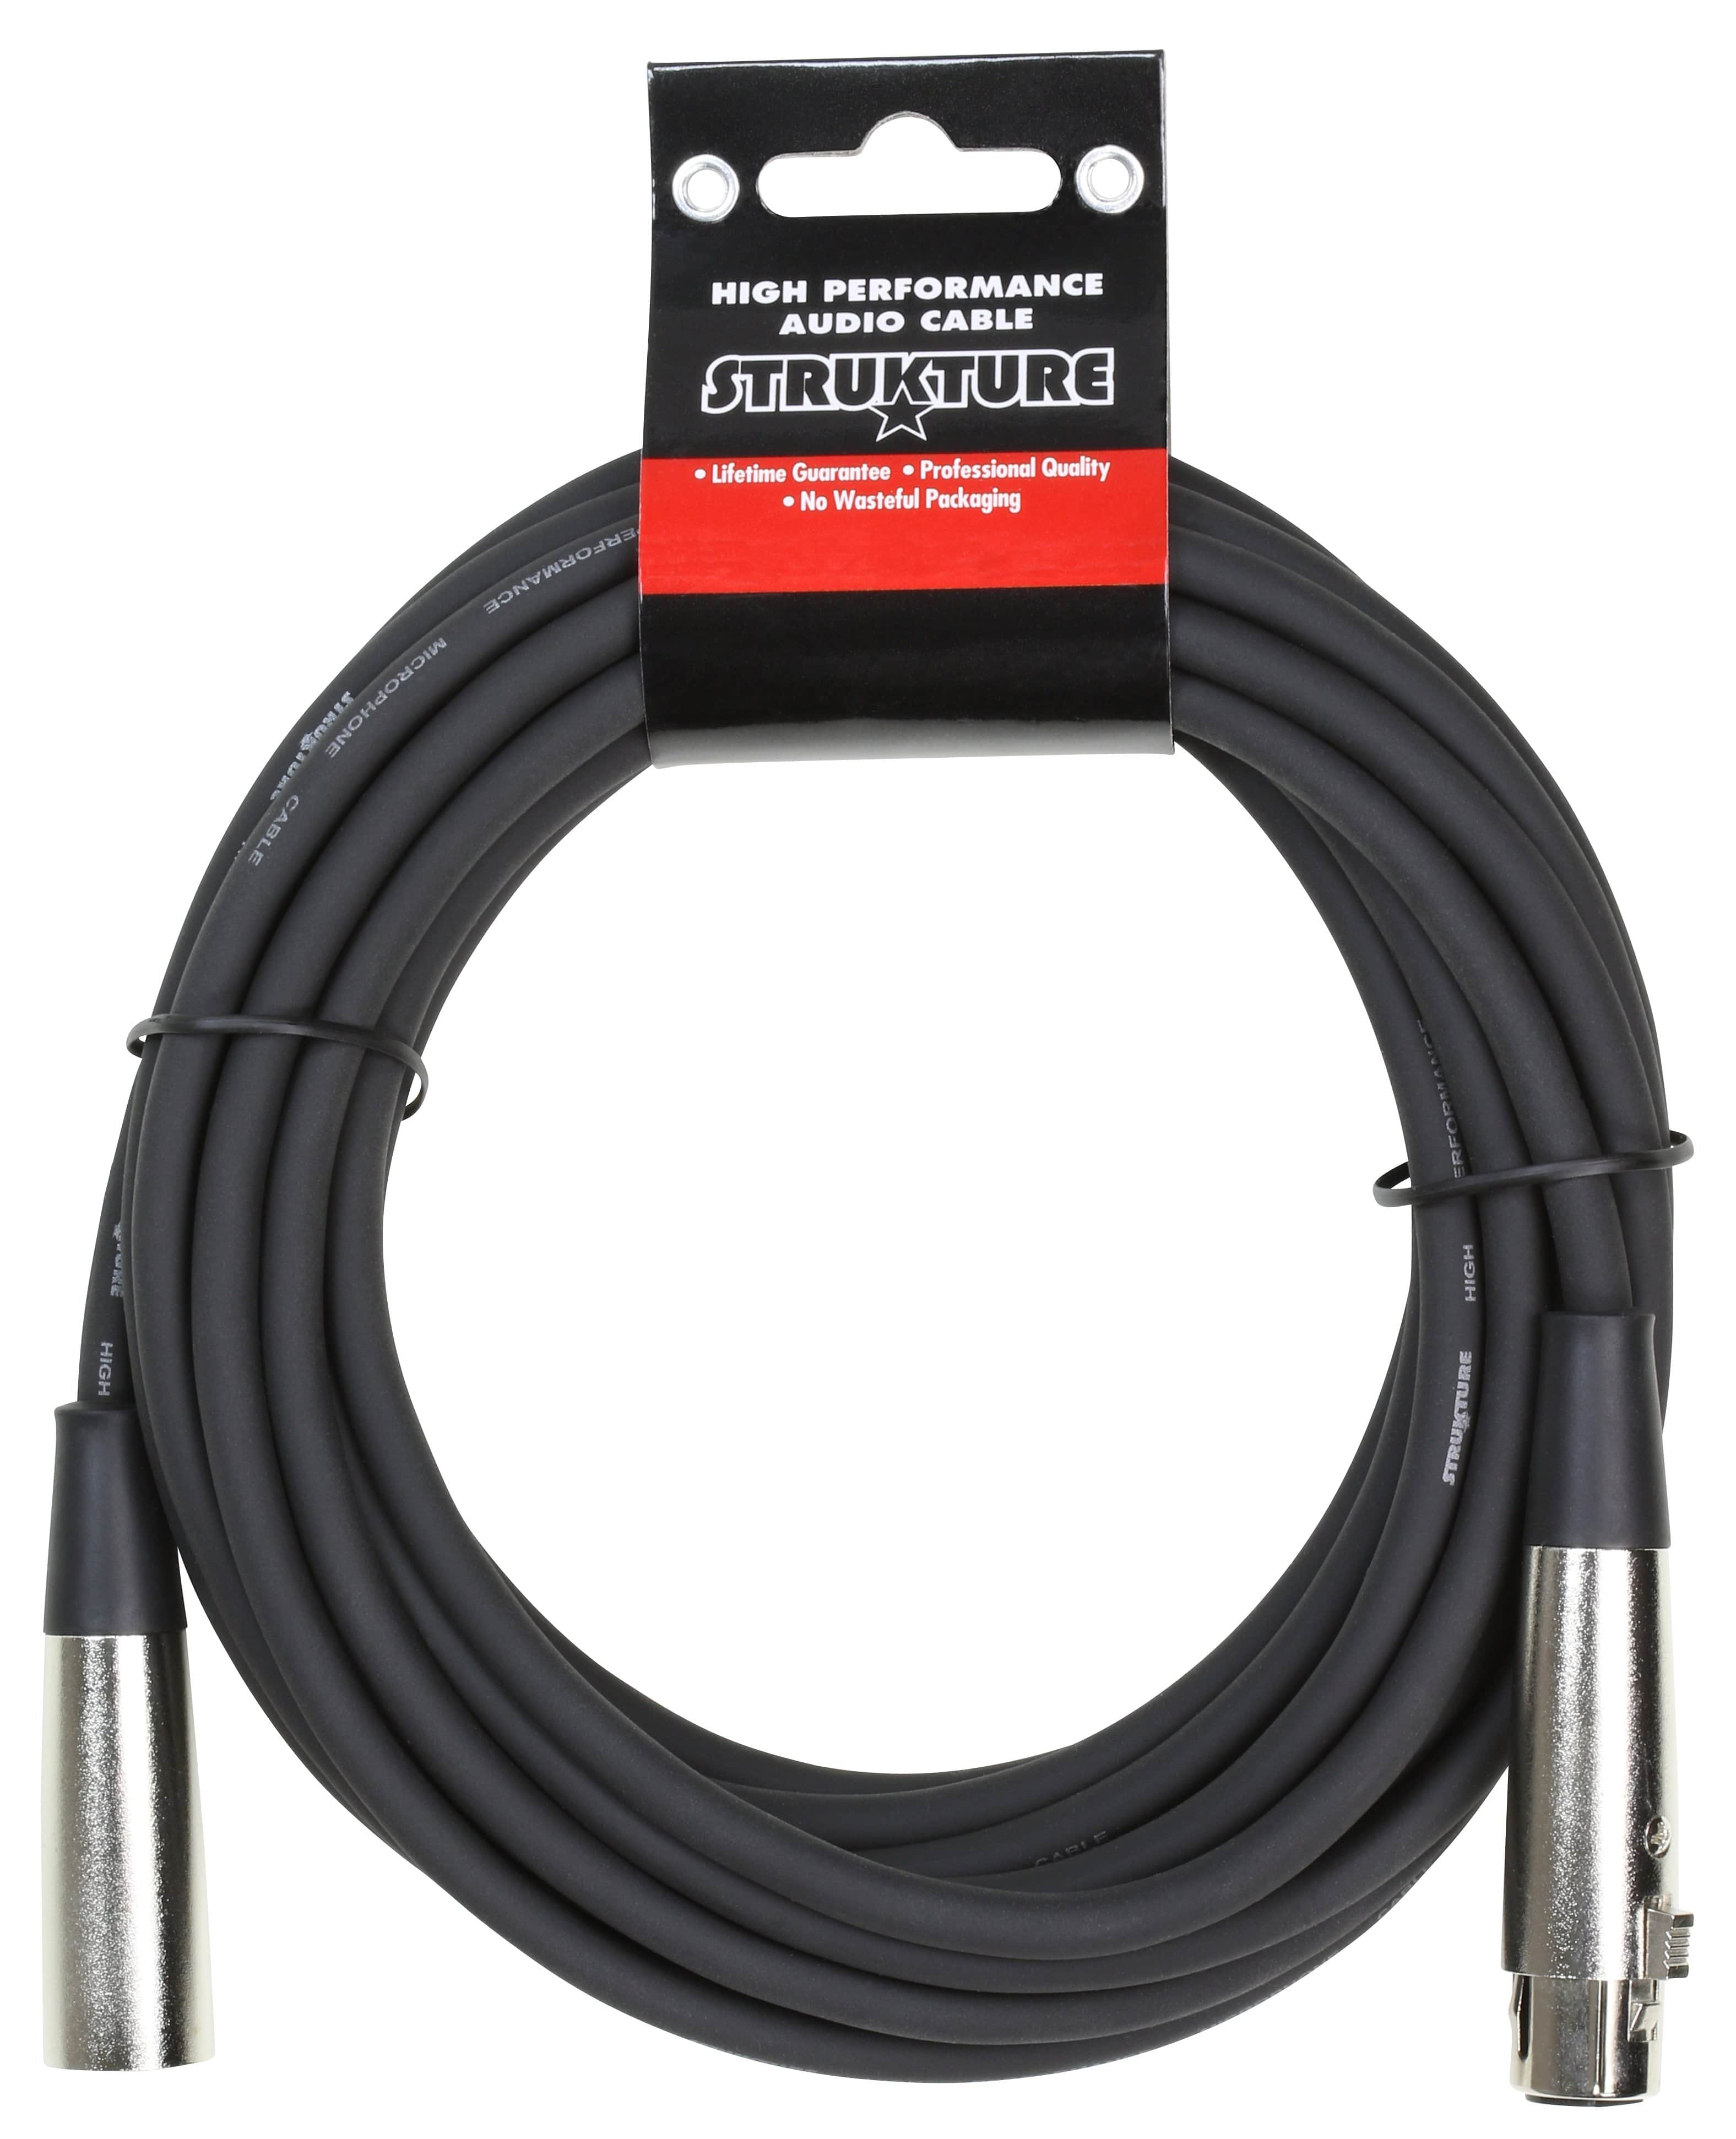 STRUKTURE MICROPHONE CABLES 20' Foot Heavy Duty 7mm Microphone Cable XLR Ft Pro Quality Lifetime Warranty